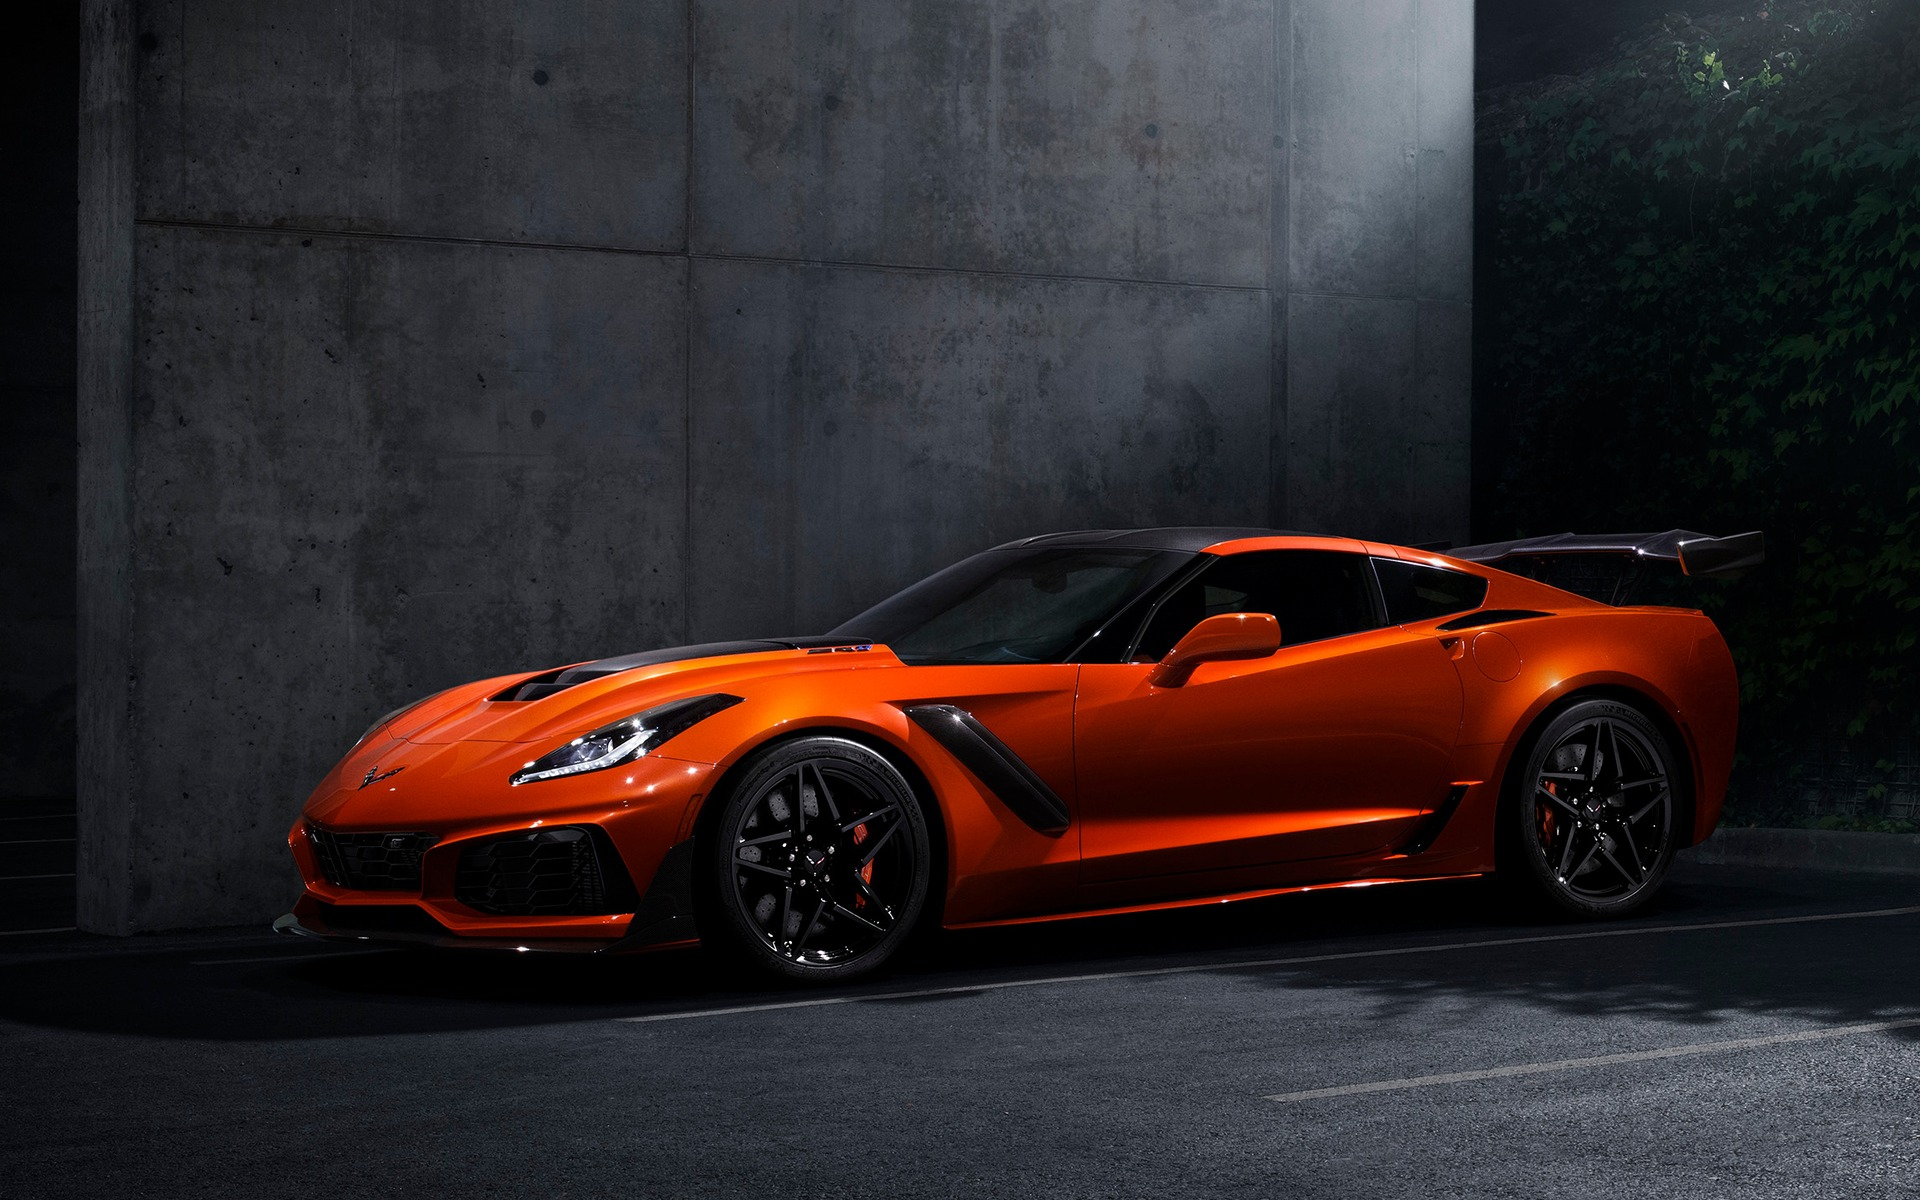 2019 Chevrolet Corvette Zr1 The Beast Is Back The Car Guide